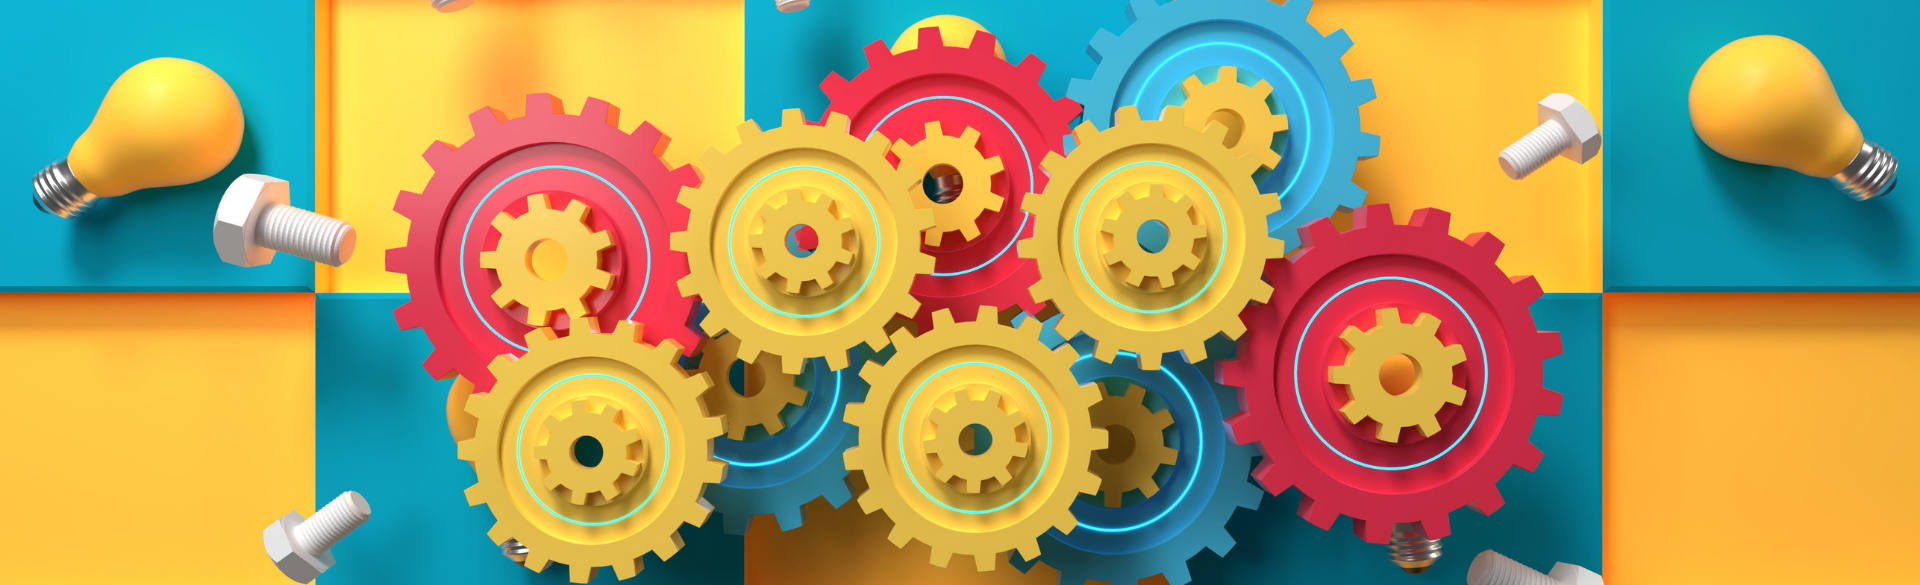 yellow and red gears